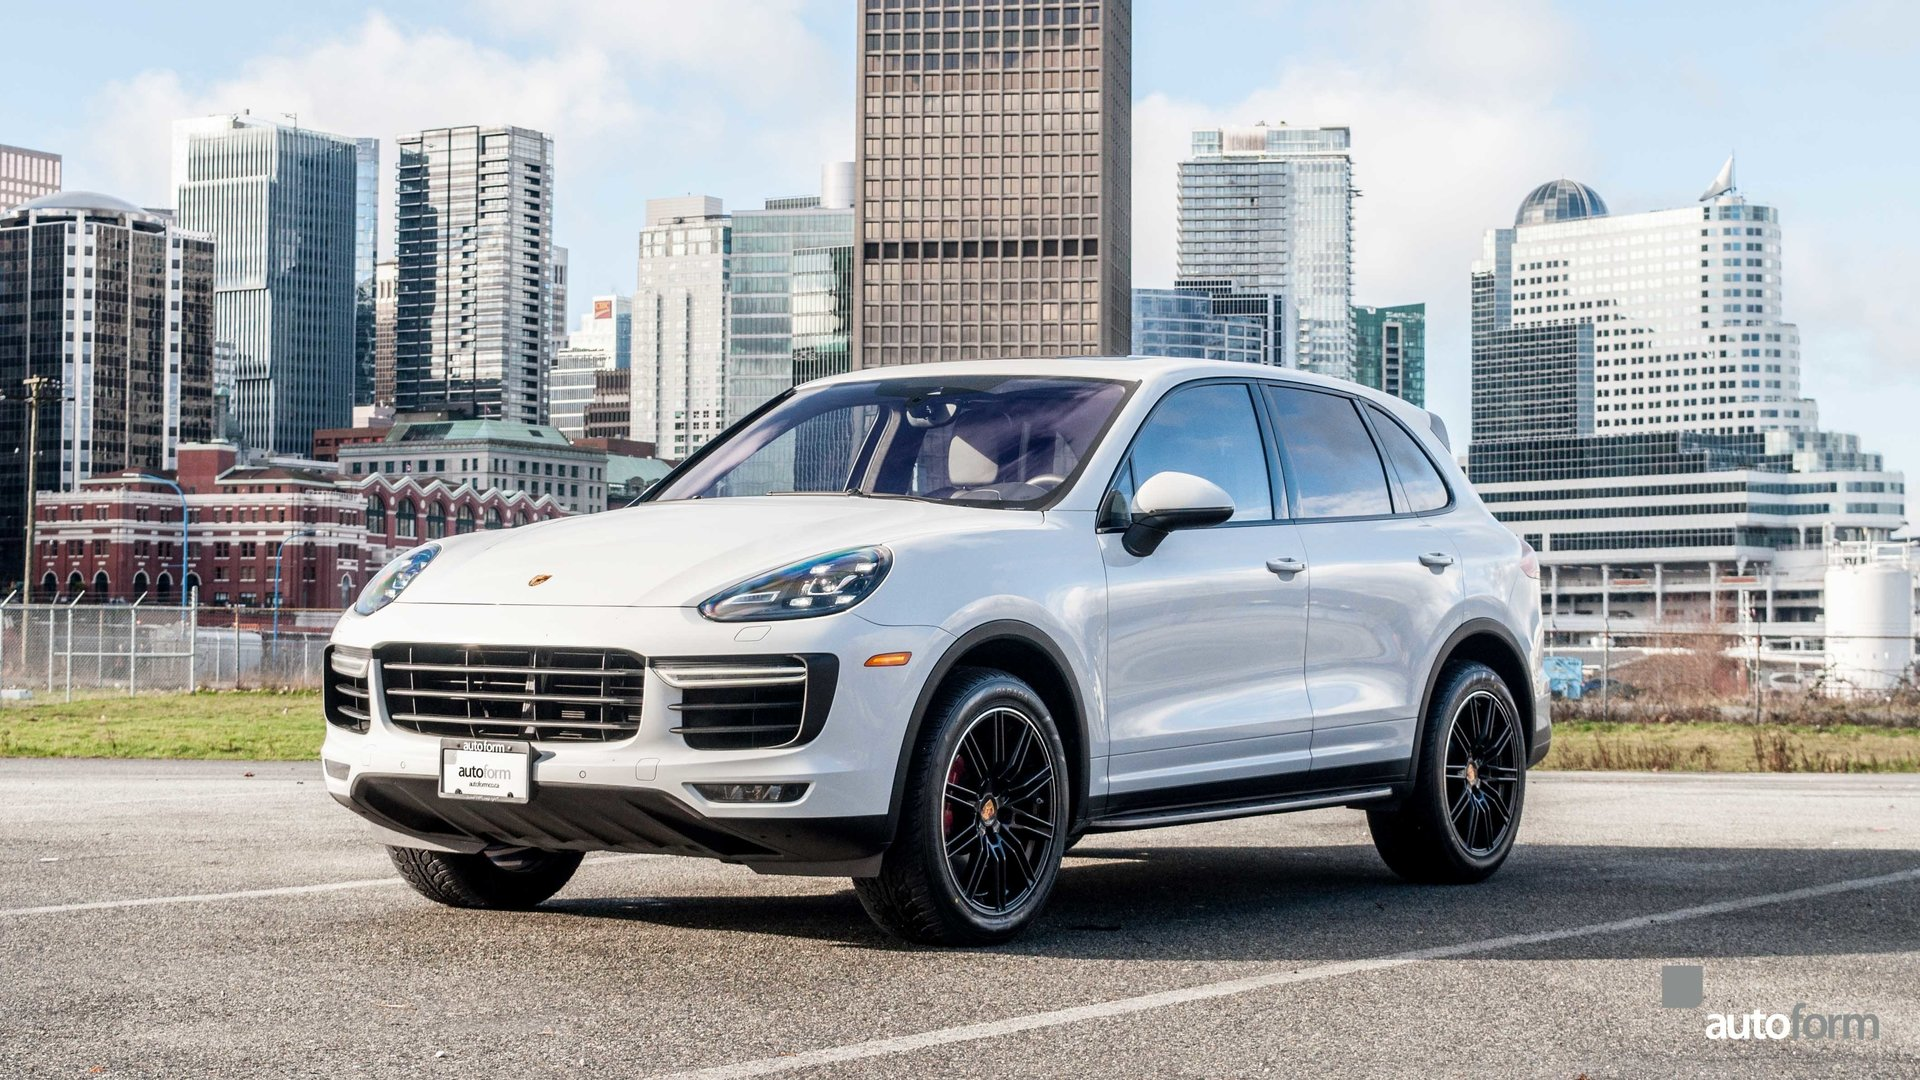 11590649afae5 hd 2015 porsche cayenne turbo